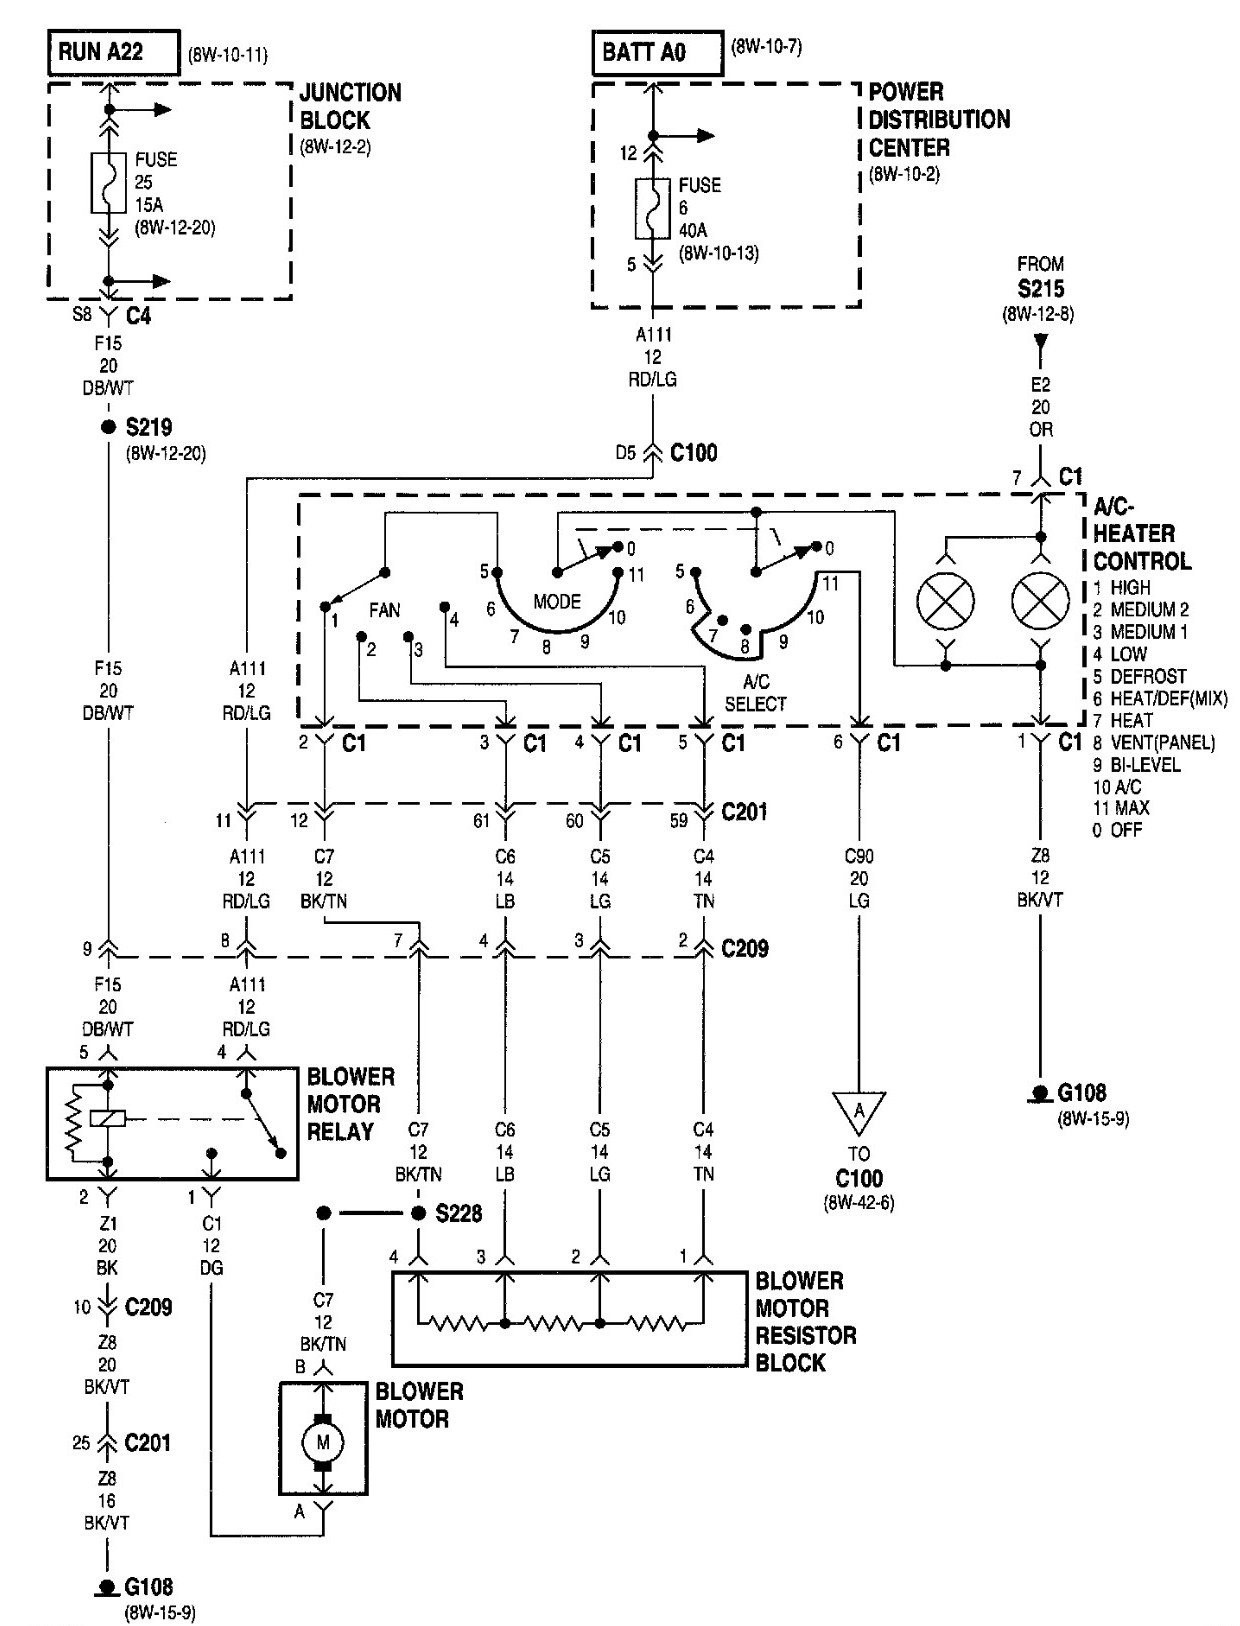 [DVZP_7254]   CA232E Jeep Wrangler Blower Motor Wiring Diagram | Wiring Library | 2000 Wrangler Heater Relay Wiring Diagram |  | Wiring Library